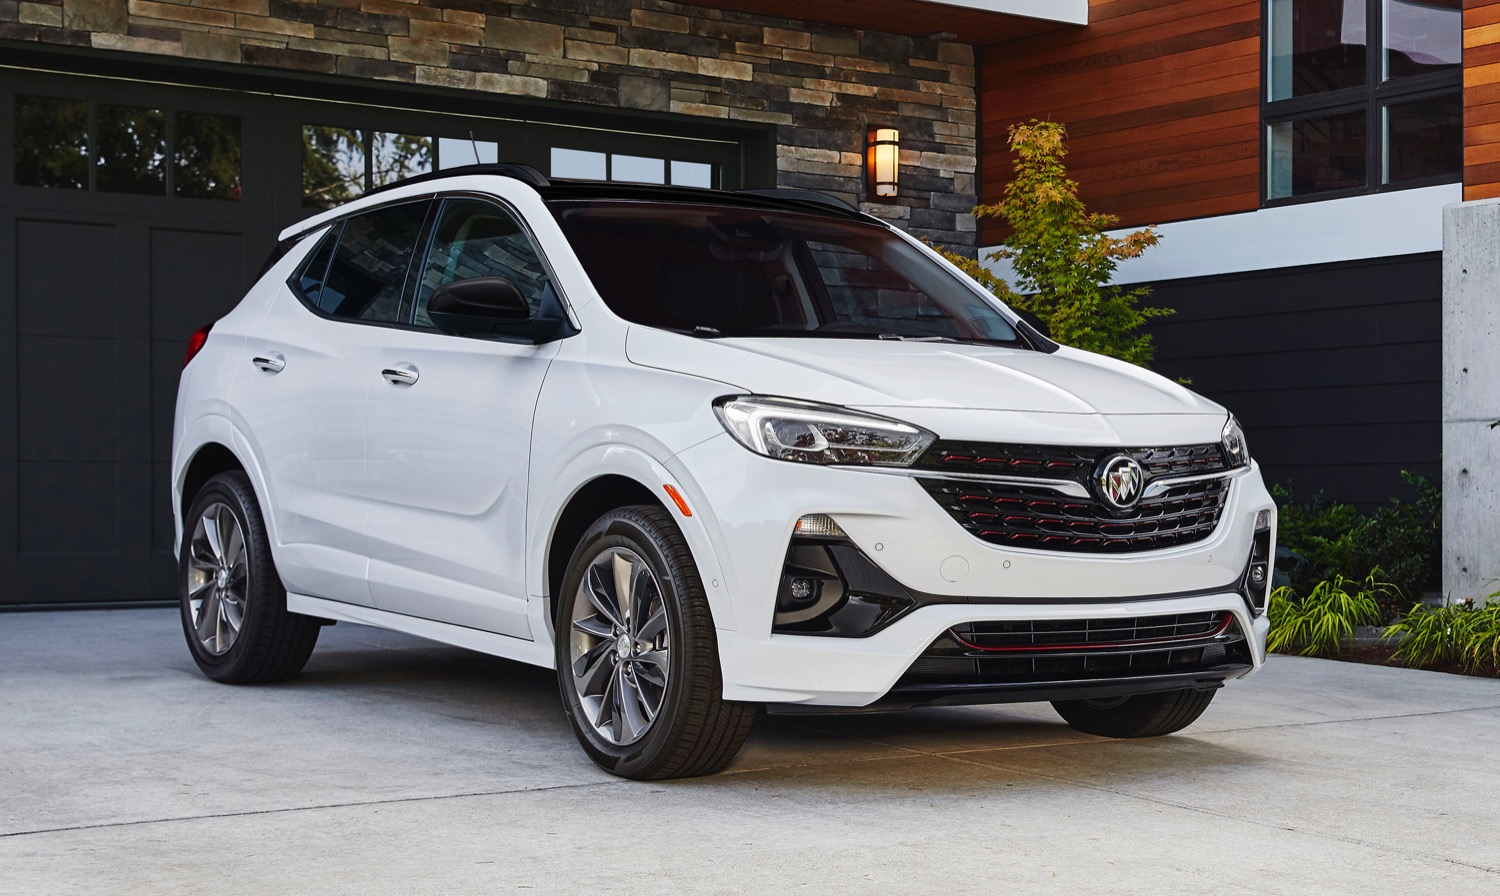 Buick Encore Gx Discount Offers Cash In February 2020 | Gm New 2022 Buick Encore Lease Specials, Trim Levels, Mpg